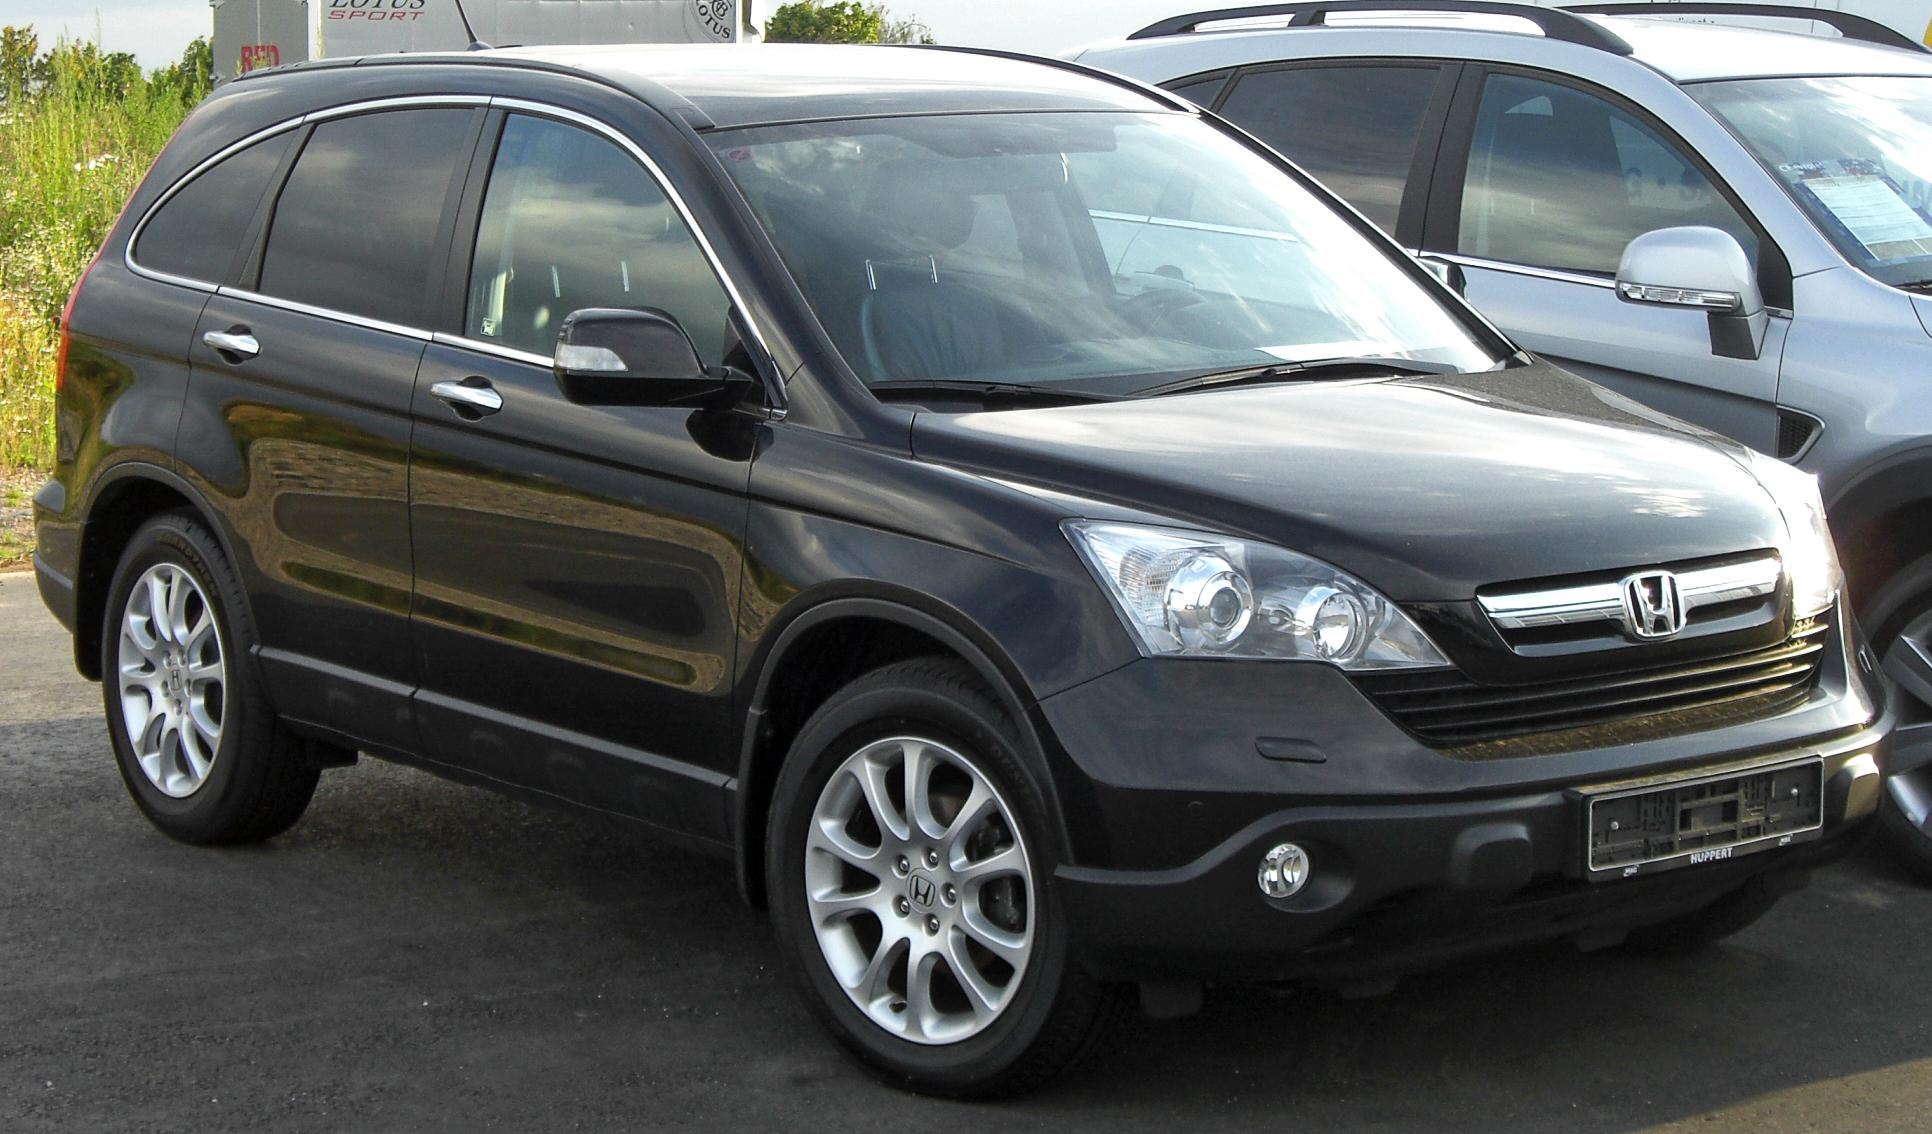 2008 honda cr v information and photos zombiedrive for Truecar com honda crv